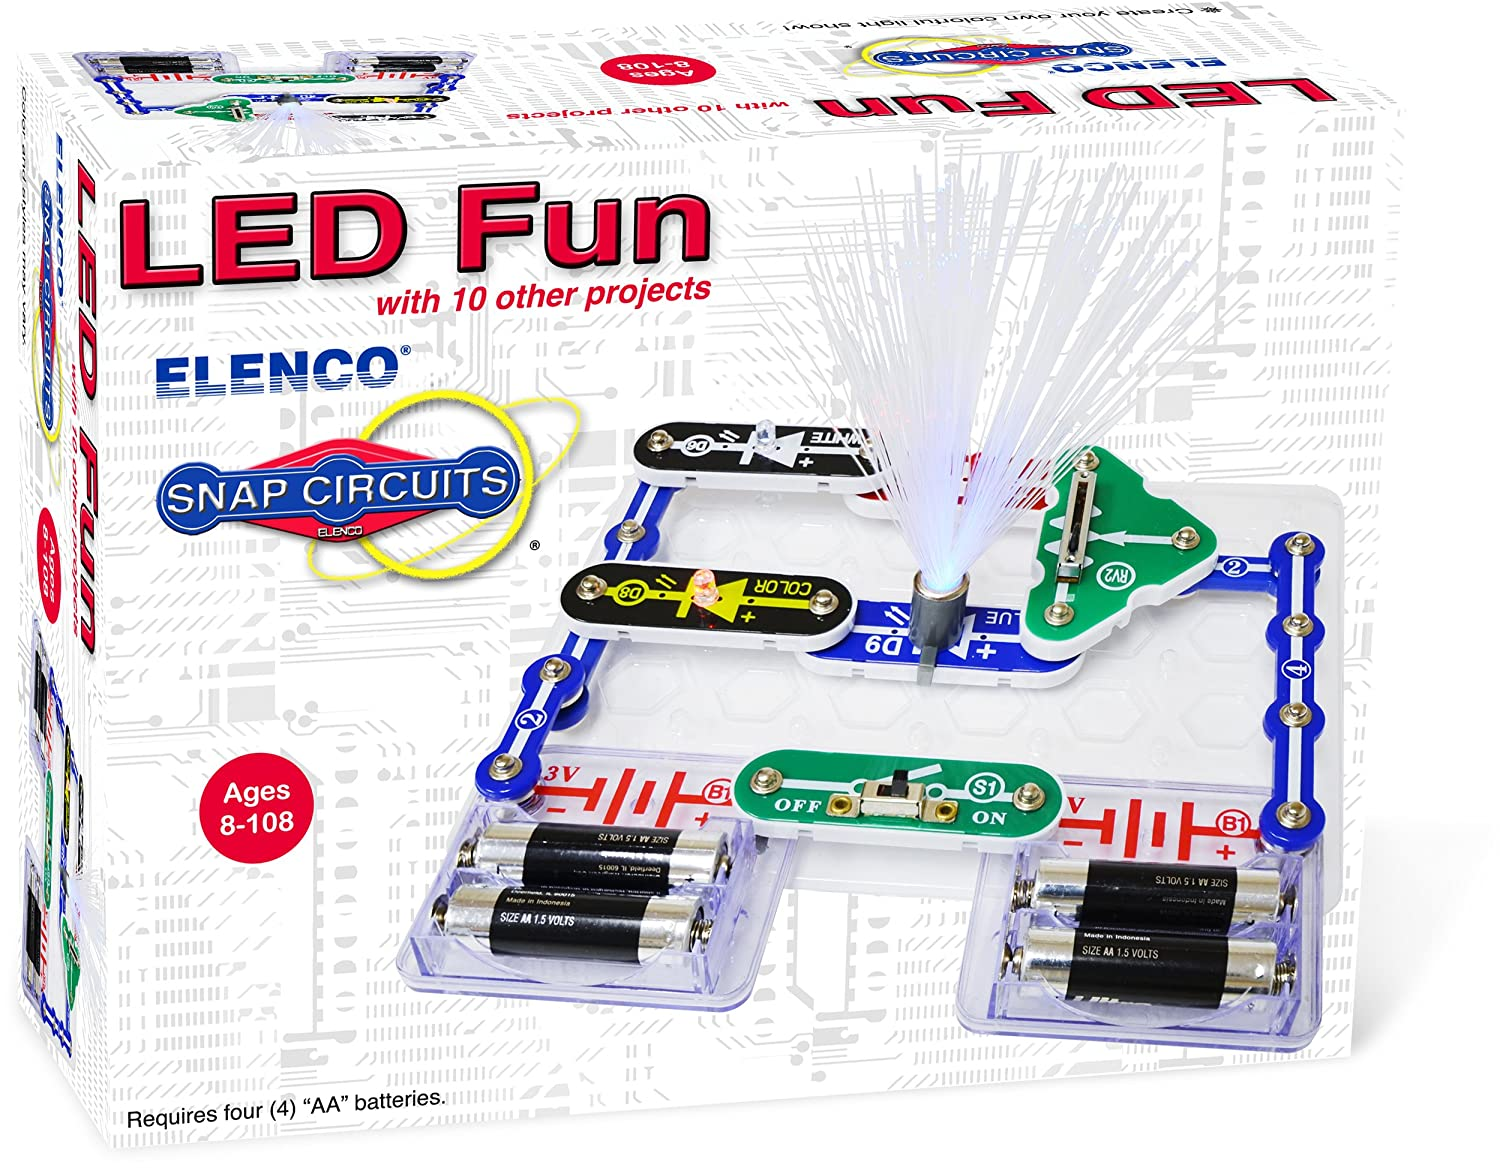 Amazon.com: Elenco Electronics SCP-11 Snap Circuits LED Fun Science Kit:  Toys & Games